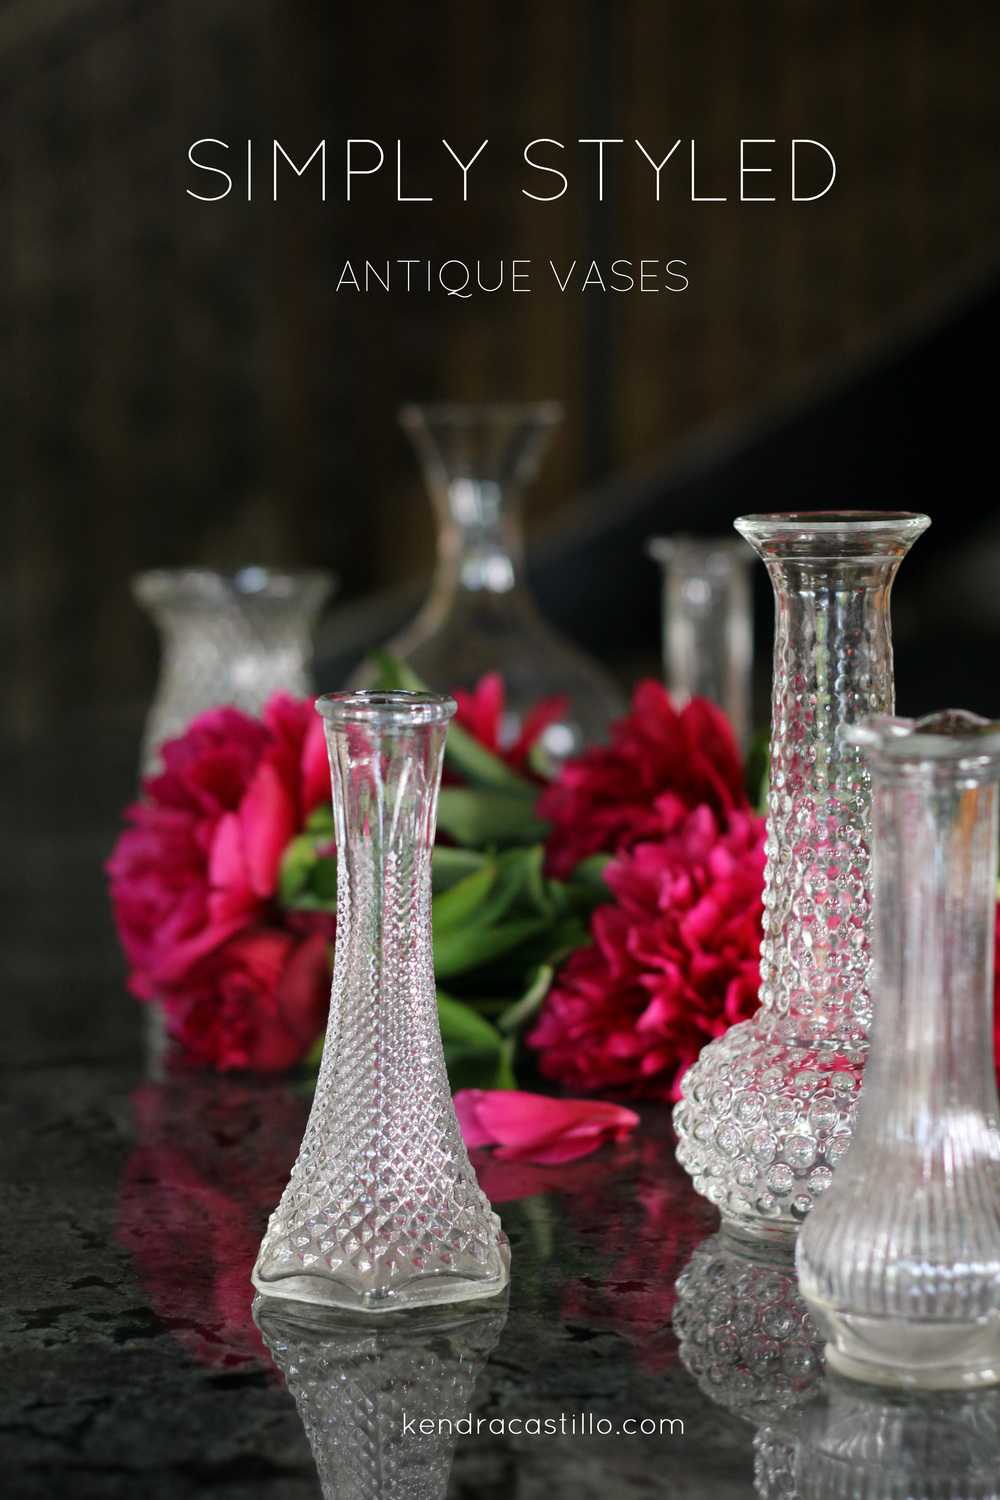 Interior styling made simple using antique glass vases kendra simply styled interiors antique vases kendracastillo reviewsmspy